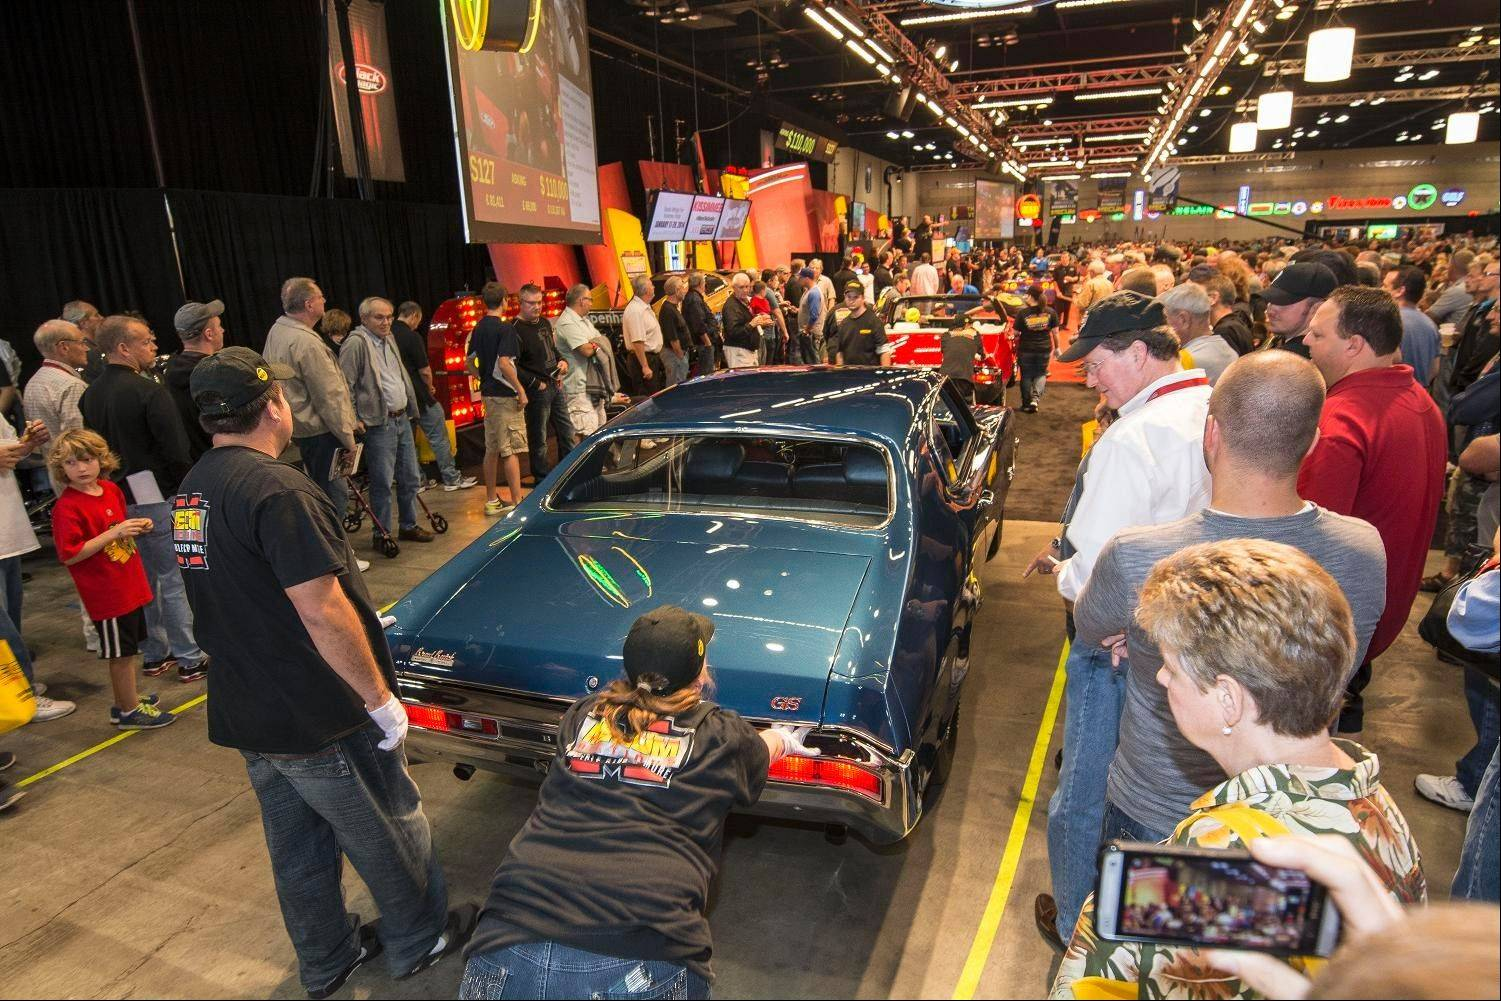 Mecum Auctions sold about 1,000 cars last weekend at the Schaumburg Convention Center